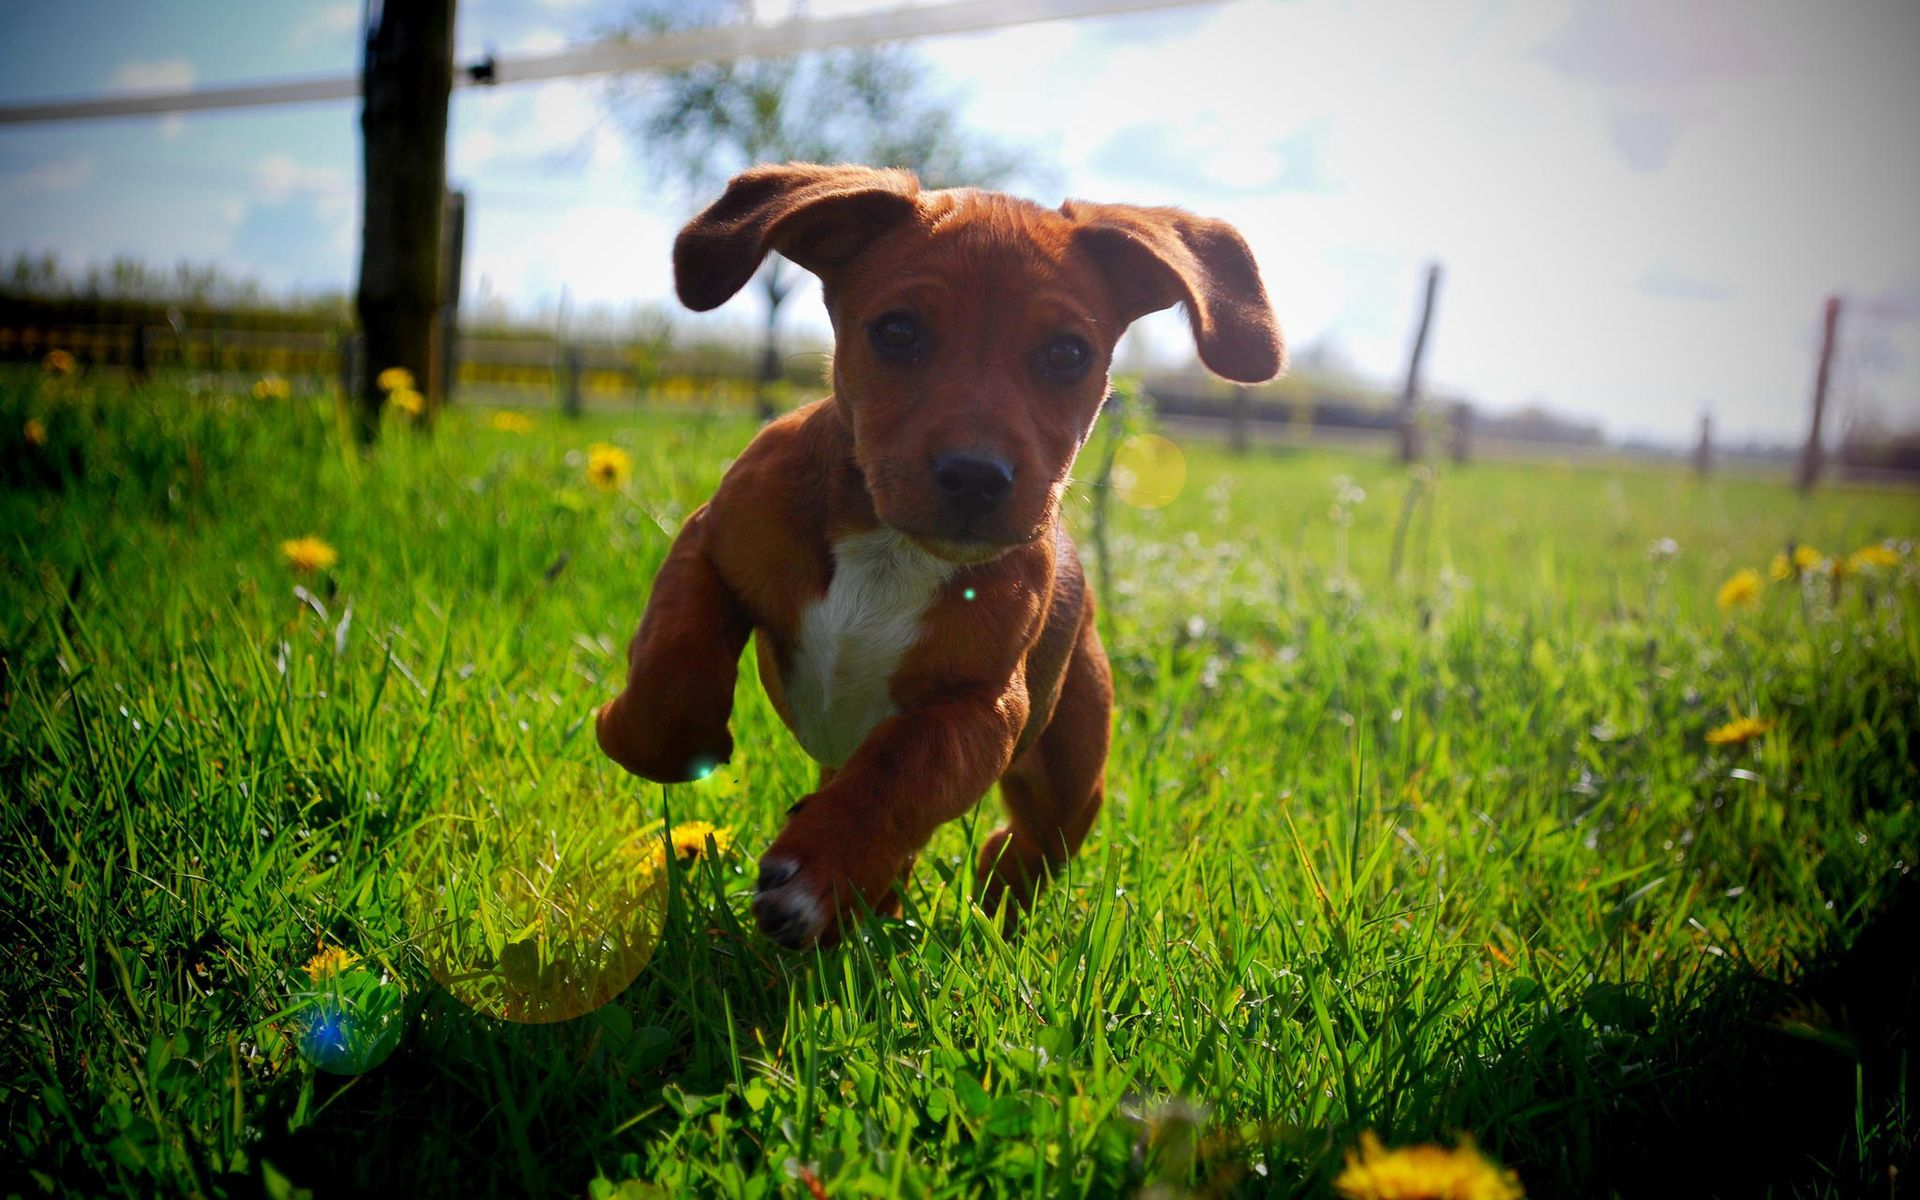 a cute brown puppy running in the grass. animal wallpapers. hd